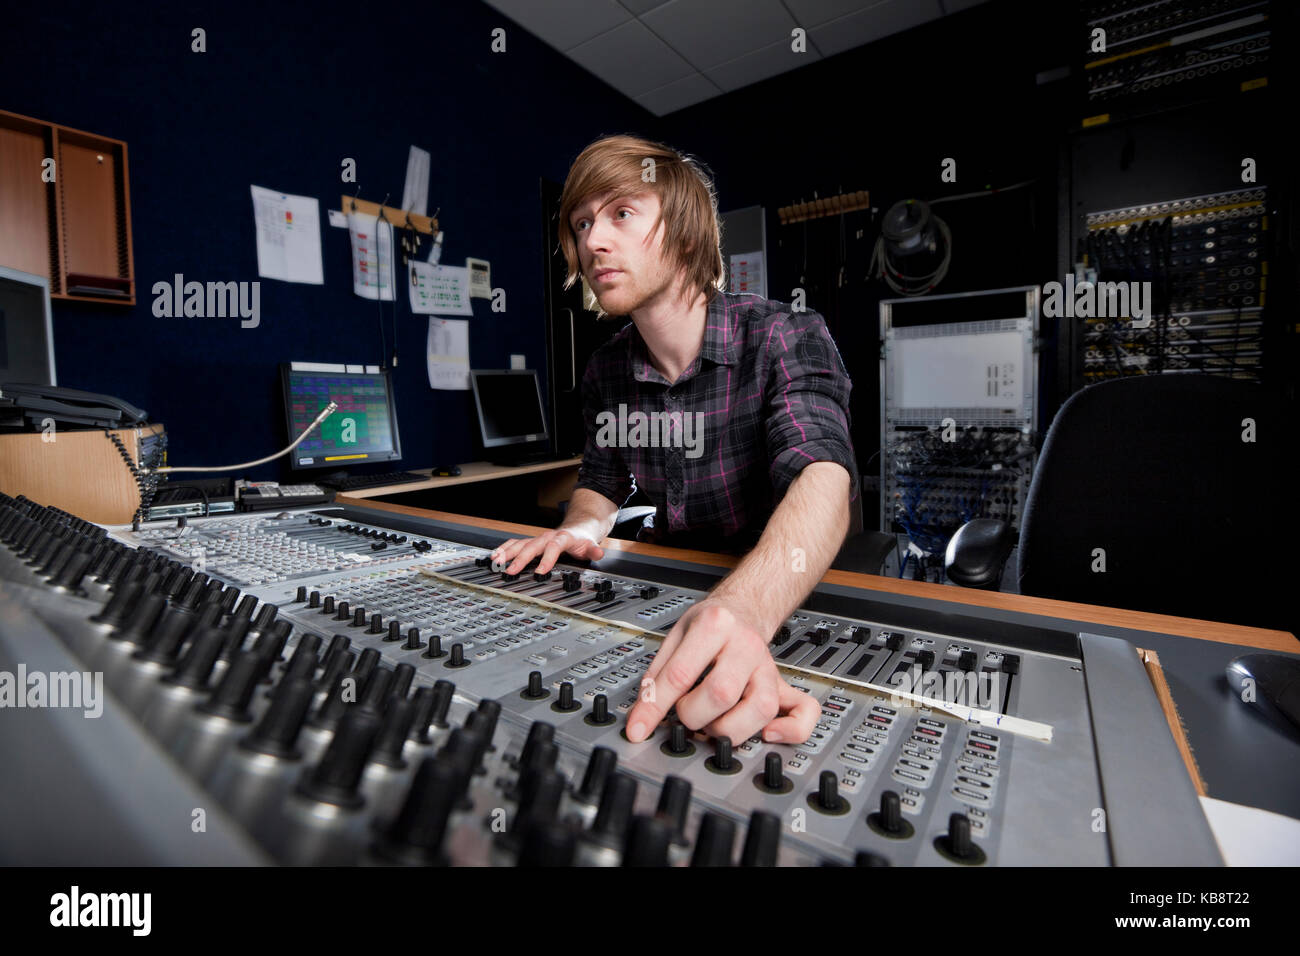 Man using a sound mixing desk in a recording studio. - Stock Image